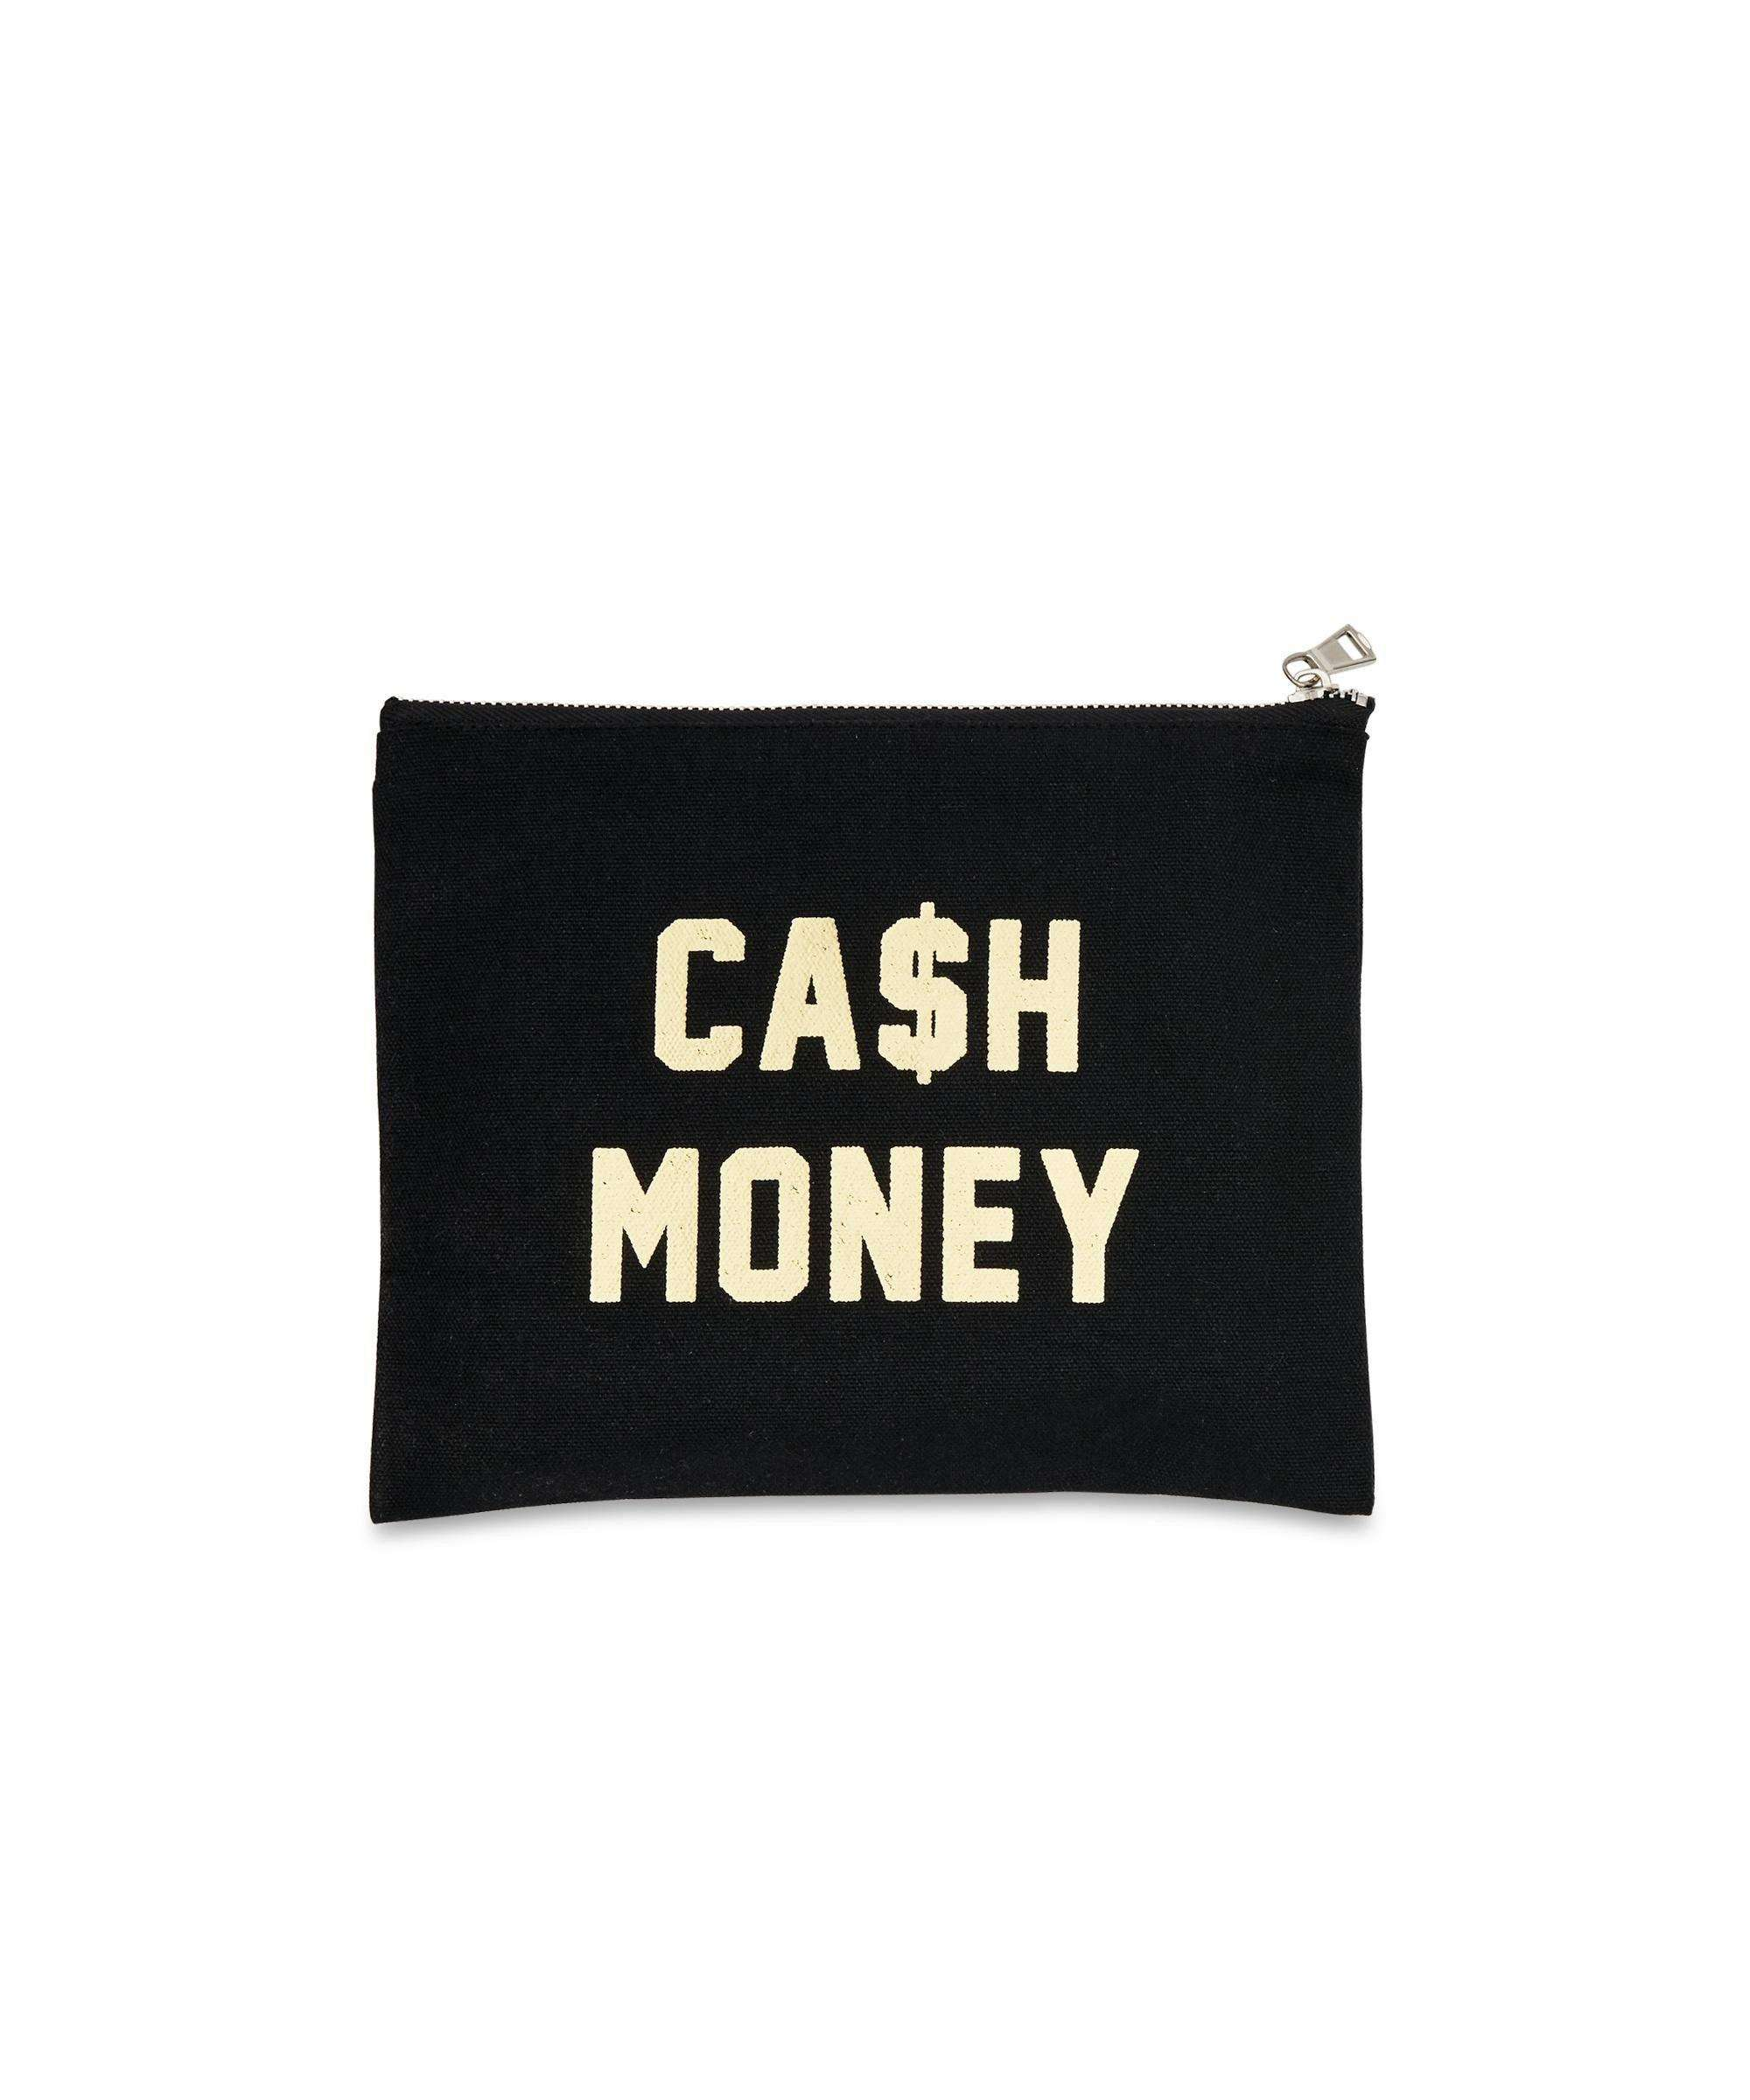 CASH MONEY POUCH Reason Clothing